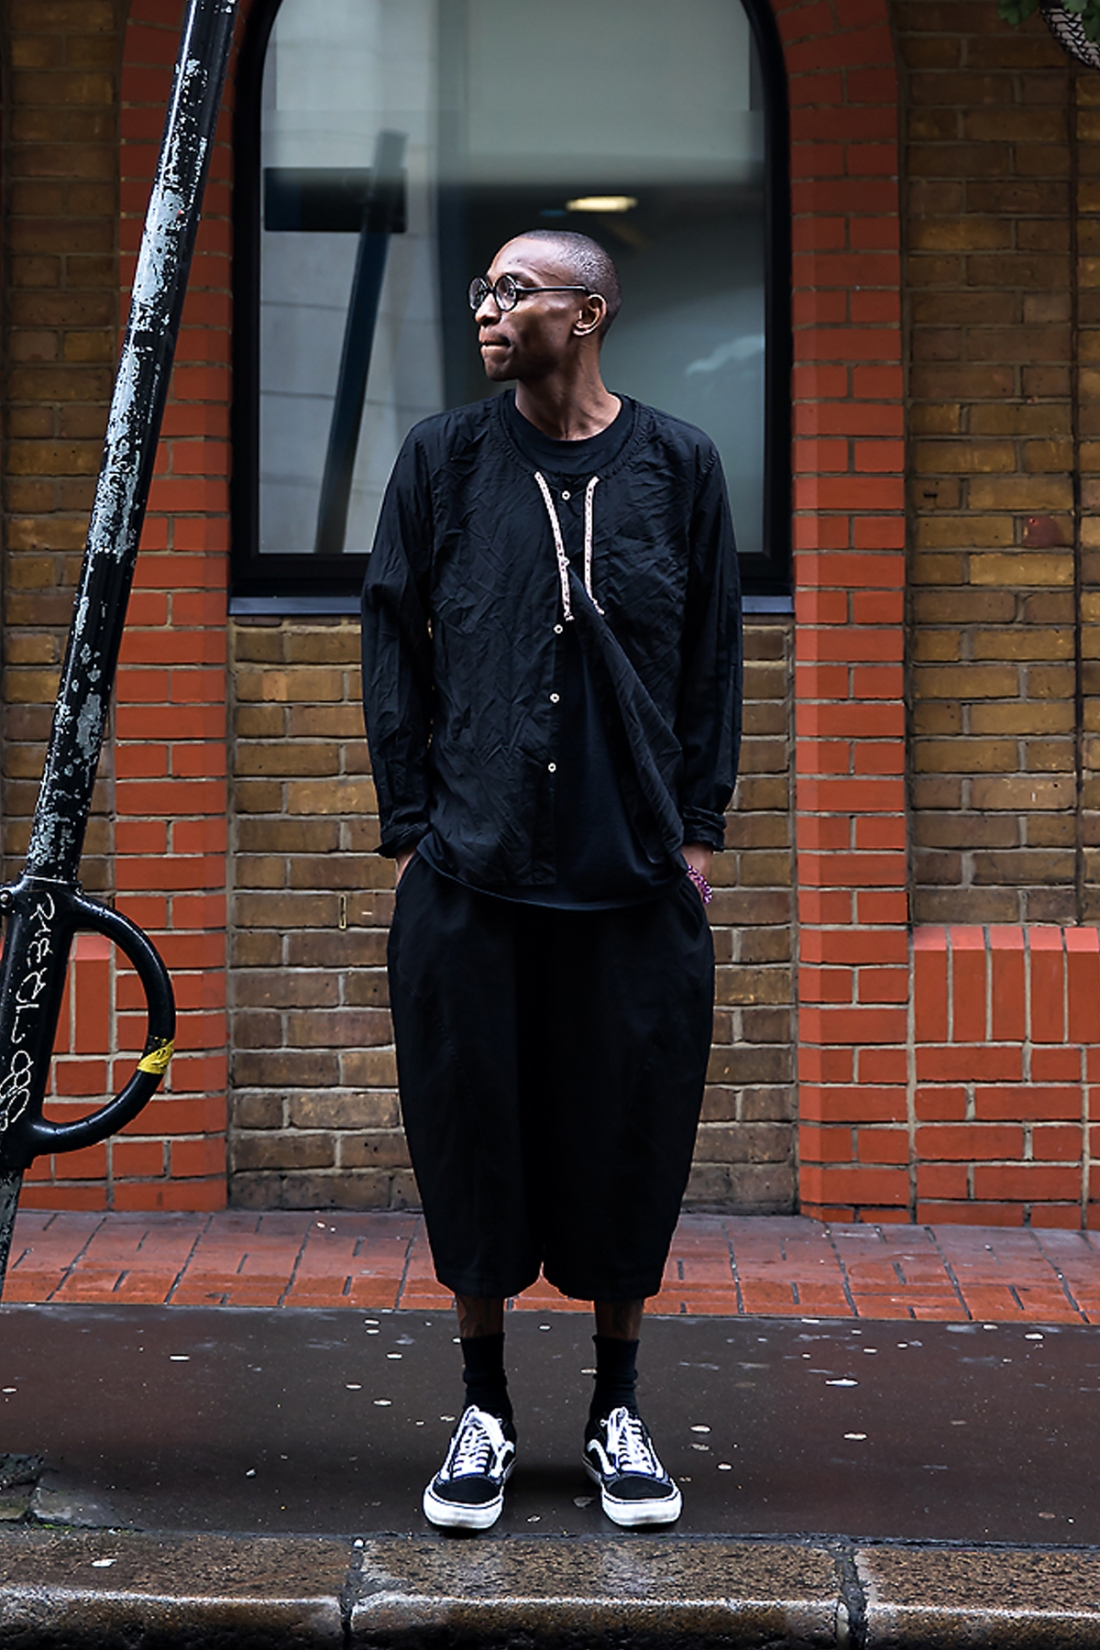 Danny, Street Fashion 2017 in London.jpg